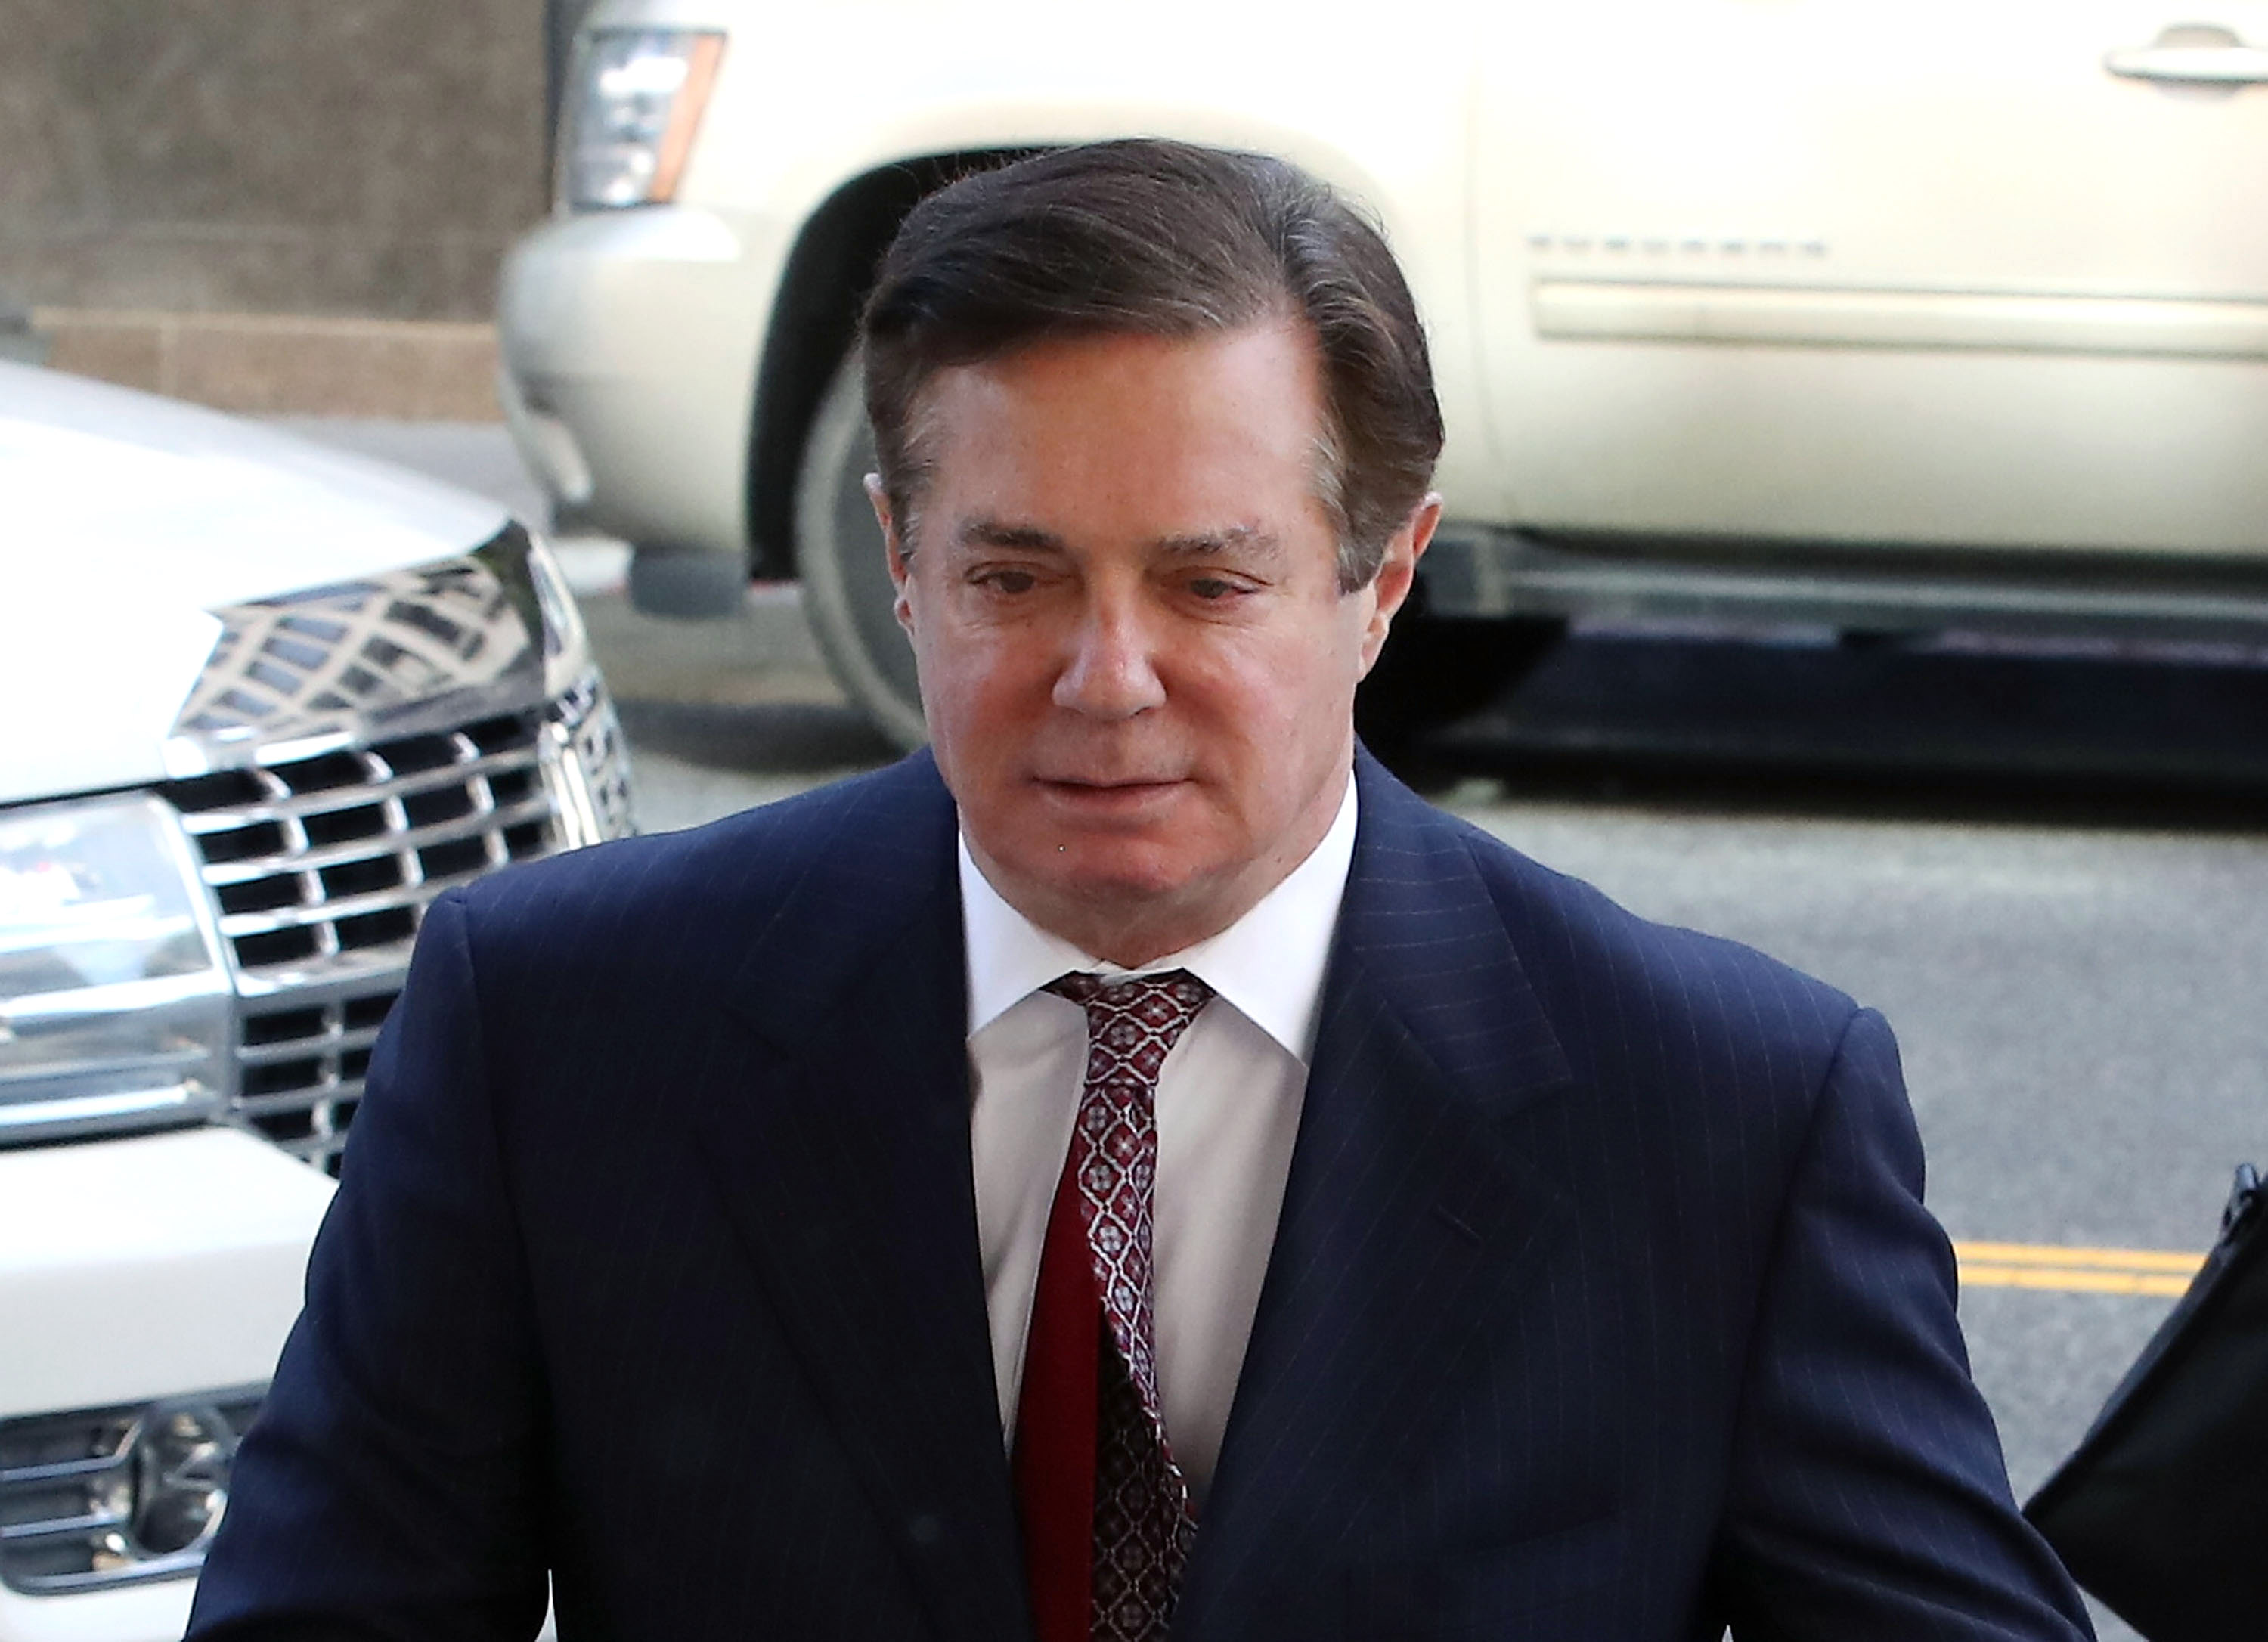 Former Trump campaign manager Paul Manafort arrives at the E. Barrett Prettyman U.S. Courthouse for a hearing in Washington, DC on June 15, 2018 .